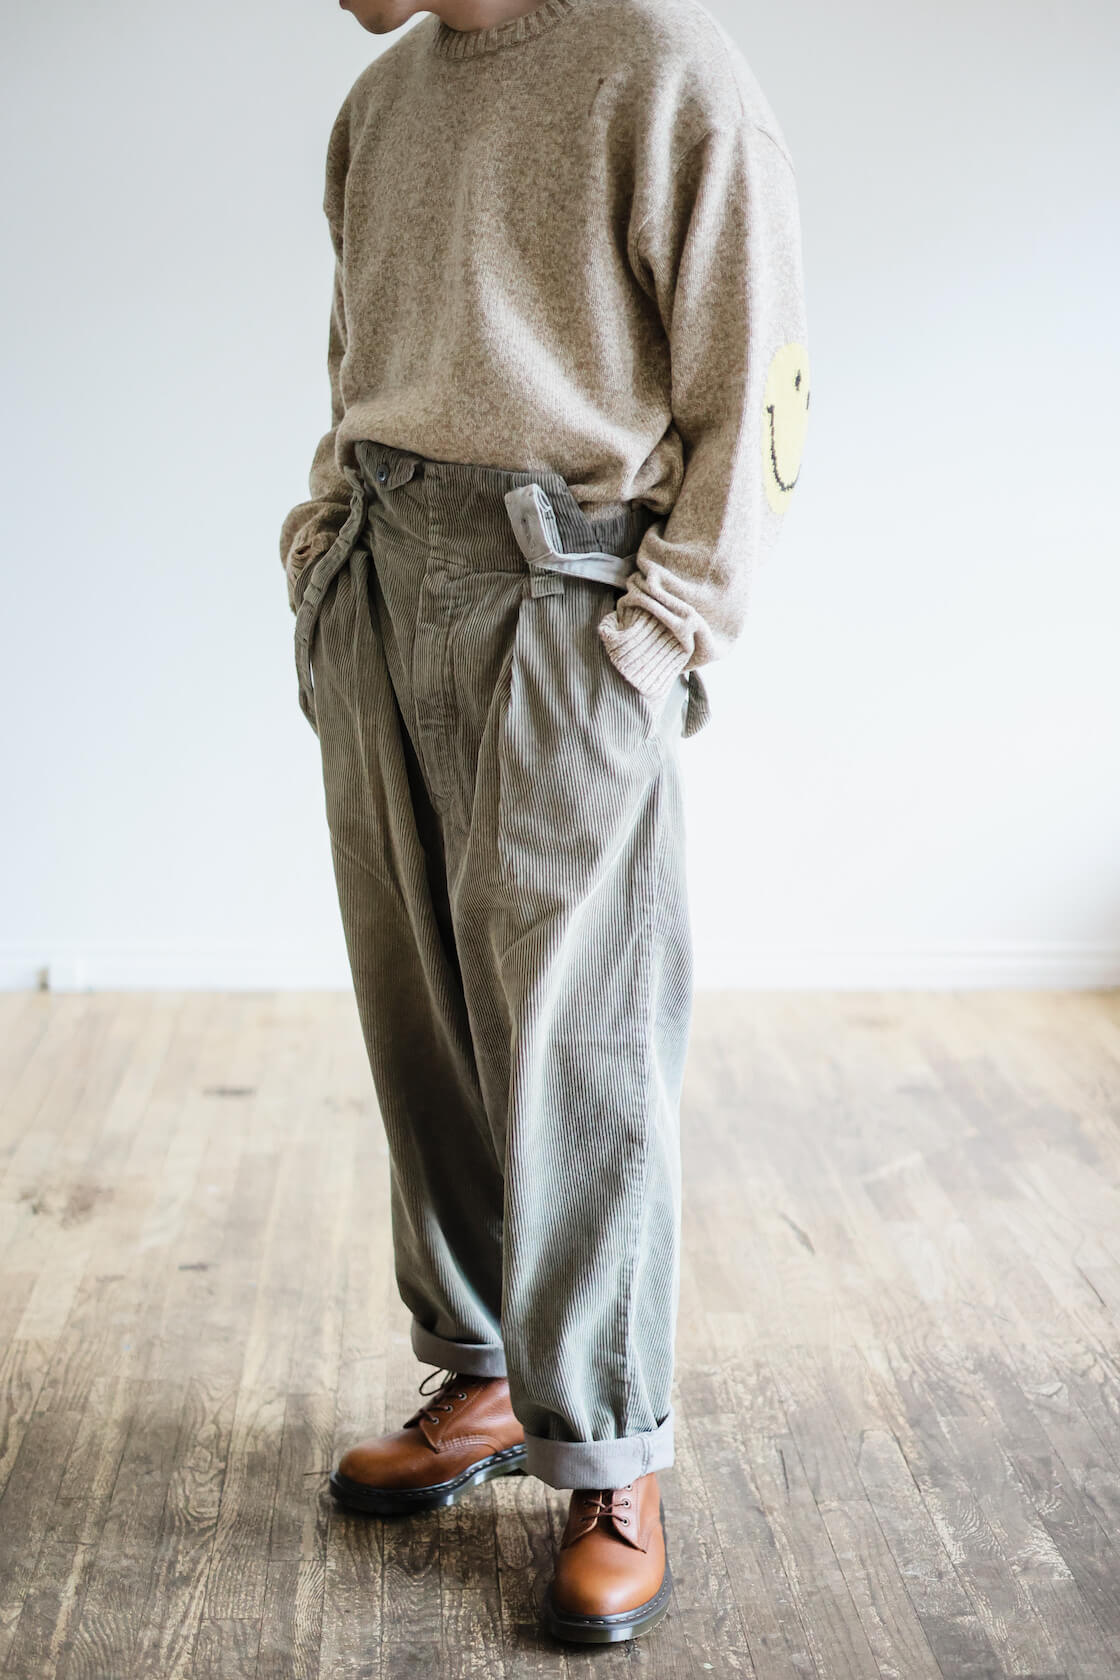 kapital 8w corduroy bash overalls and smilie sweater on body